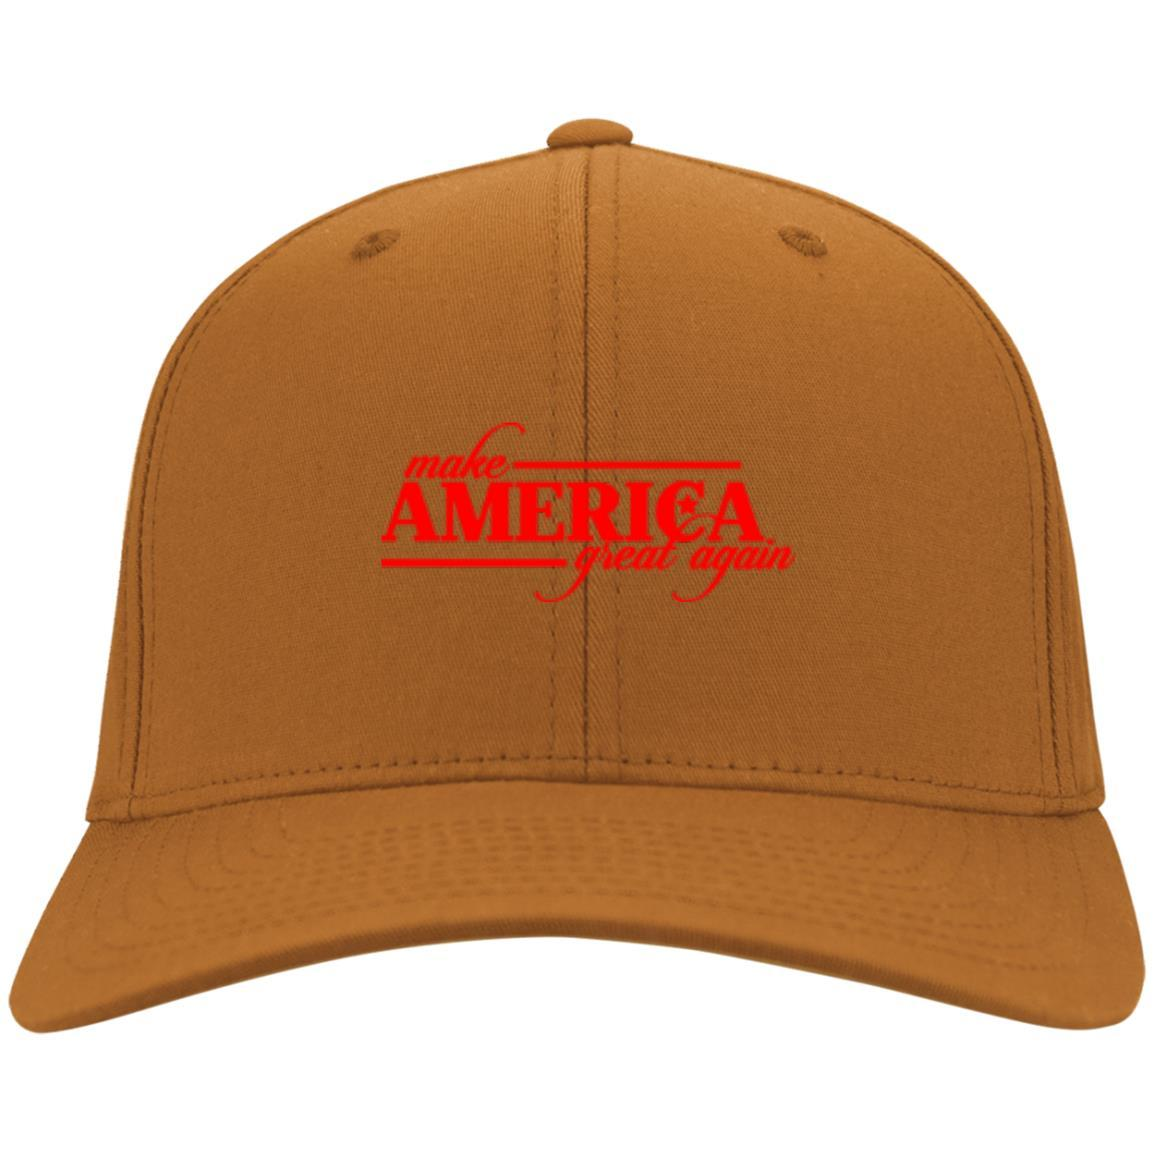 Make America Great Again - Port & Co. Twill Cap Texas Orange